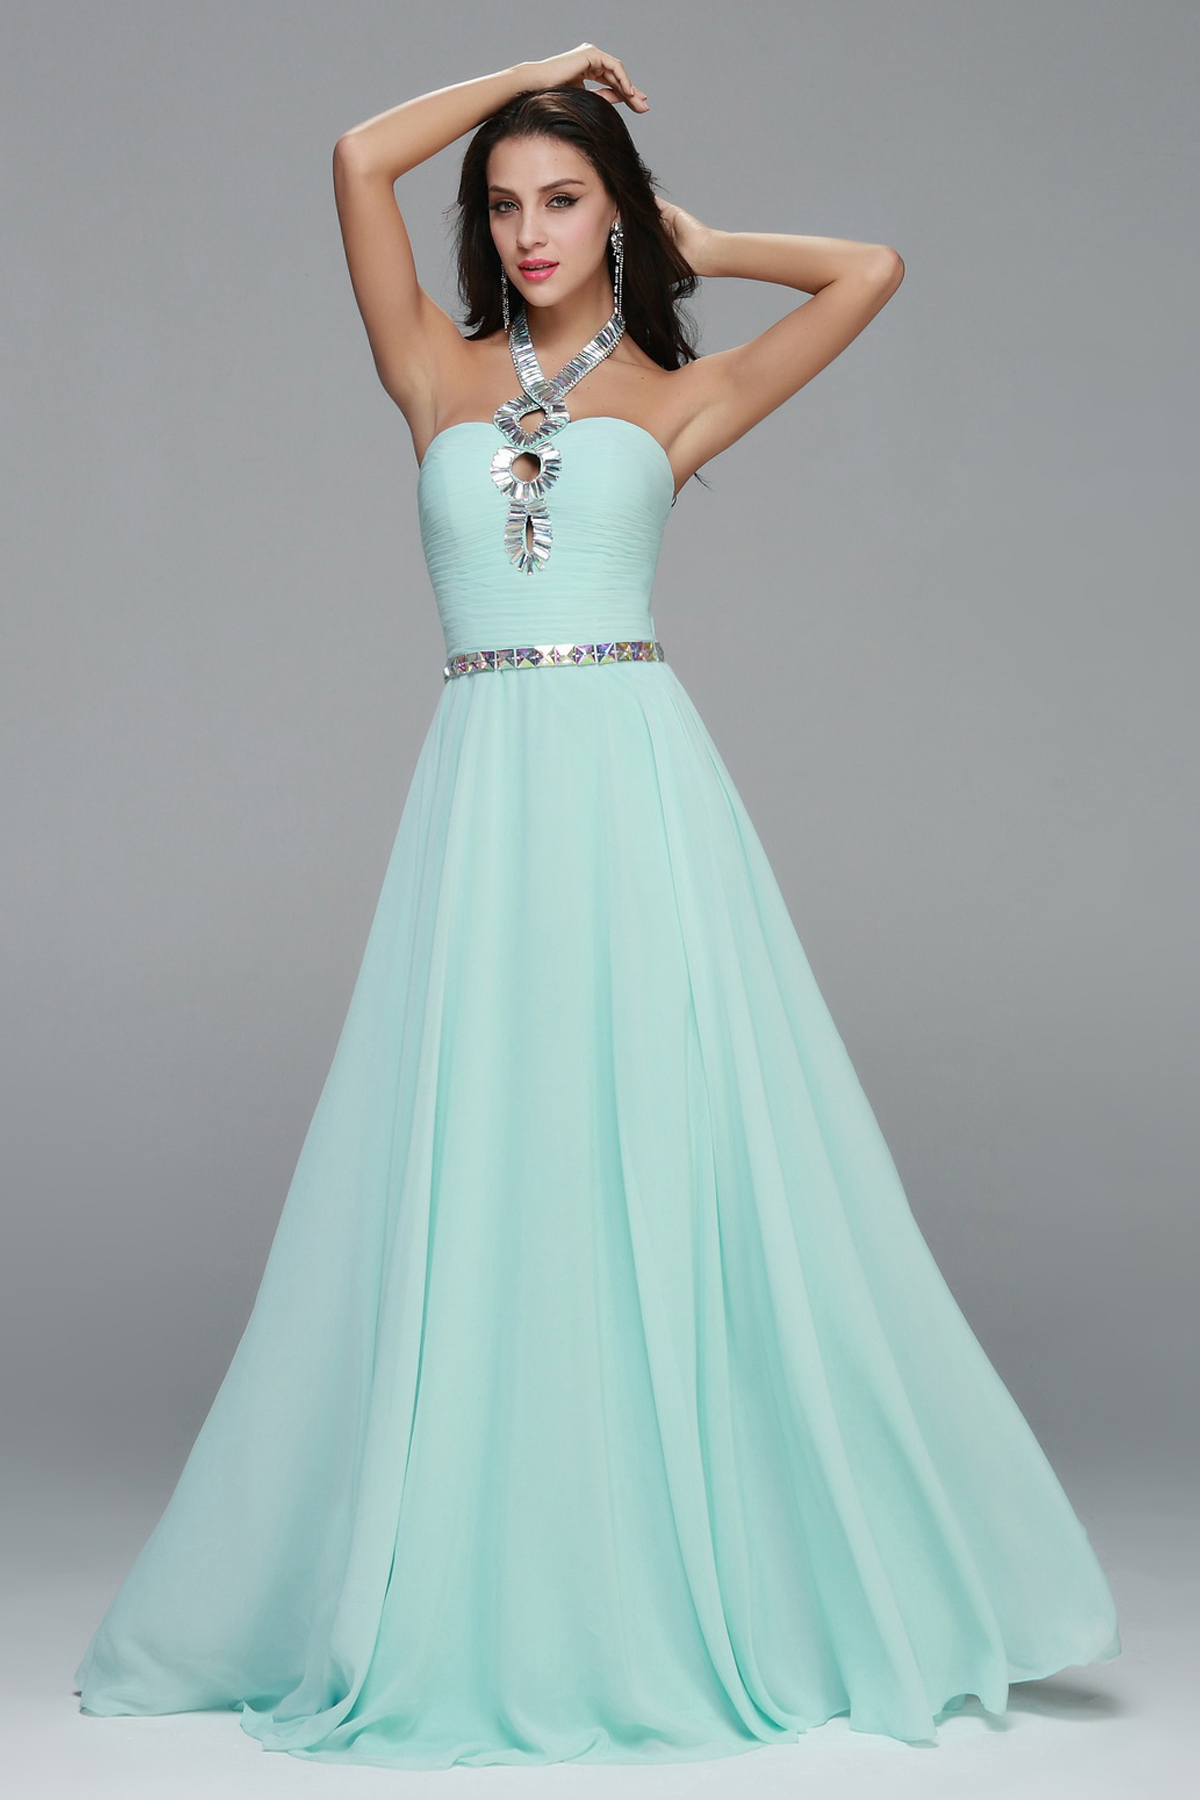 Unique Beading Front A Line Long Chiffon Prom Dress